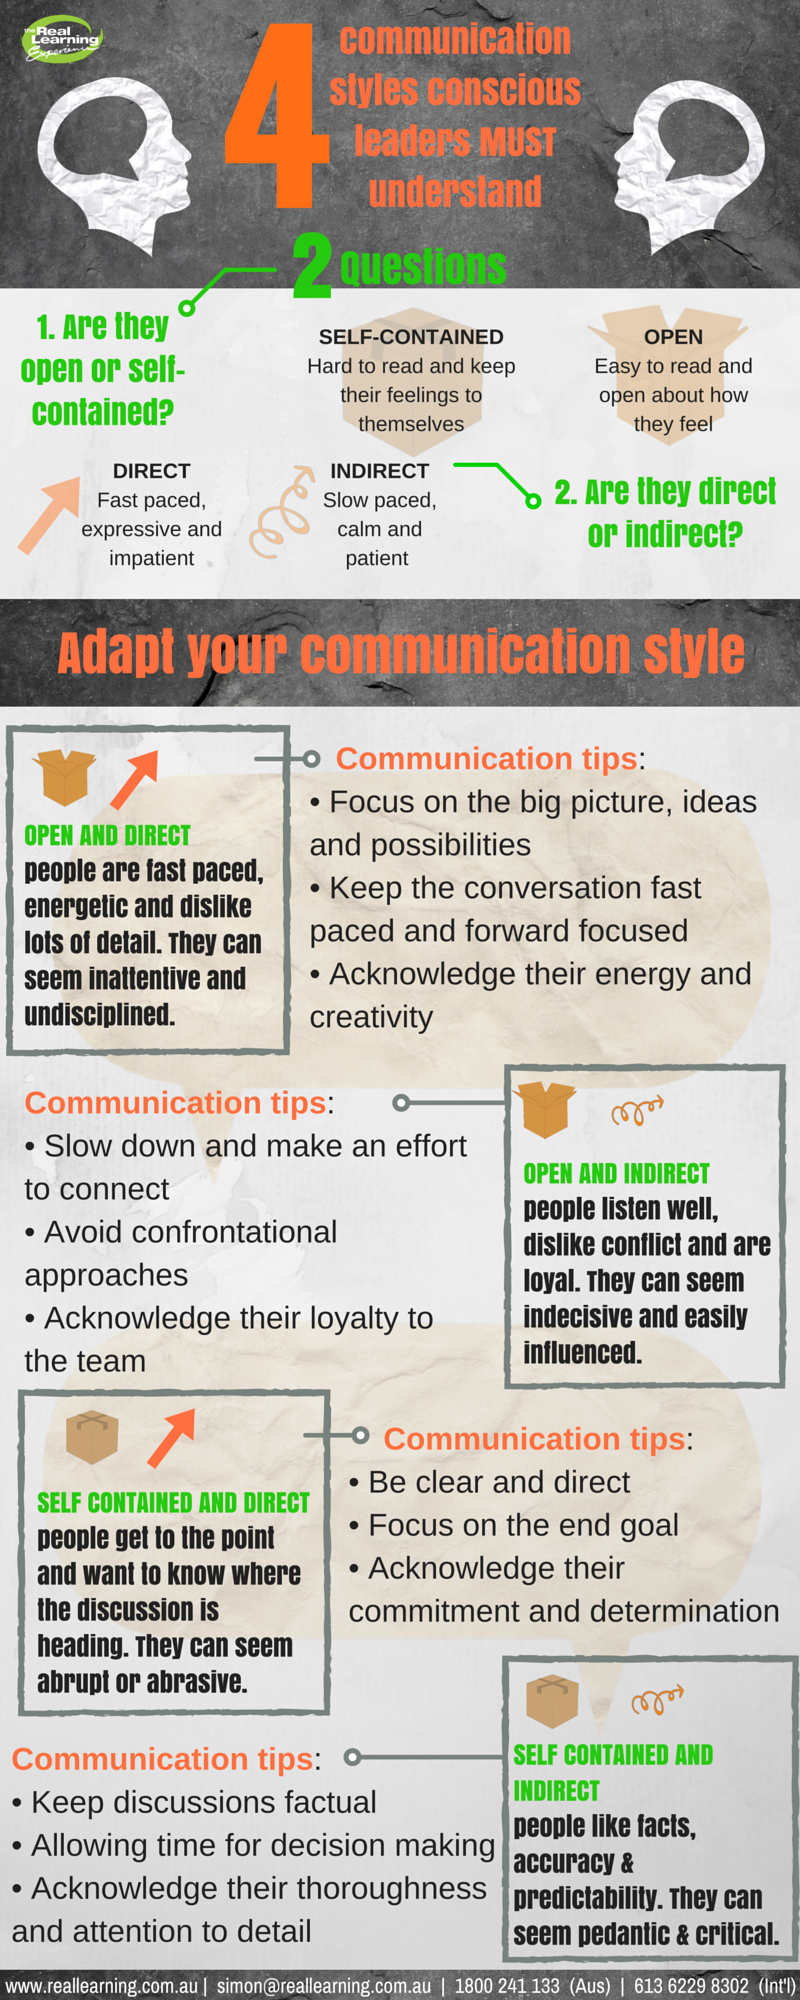 4_communication_styles_conscious_leaders_must_understand_1.png